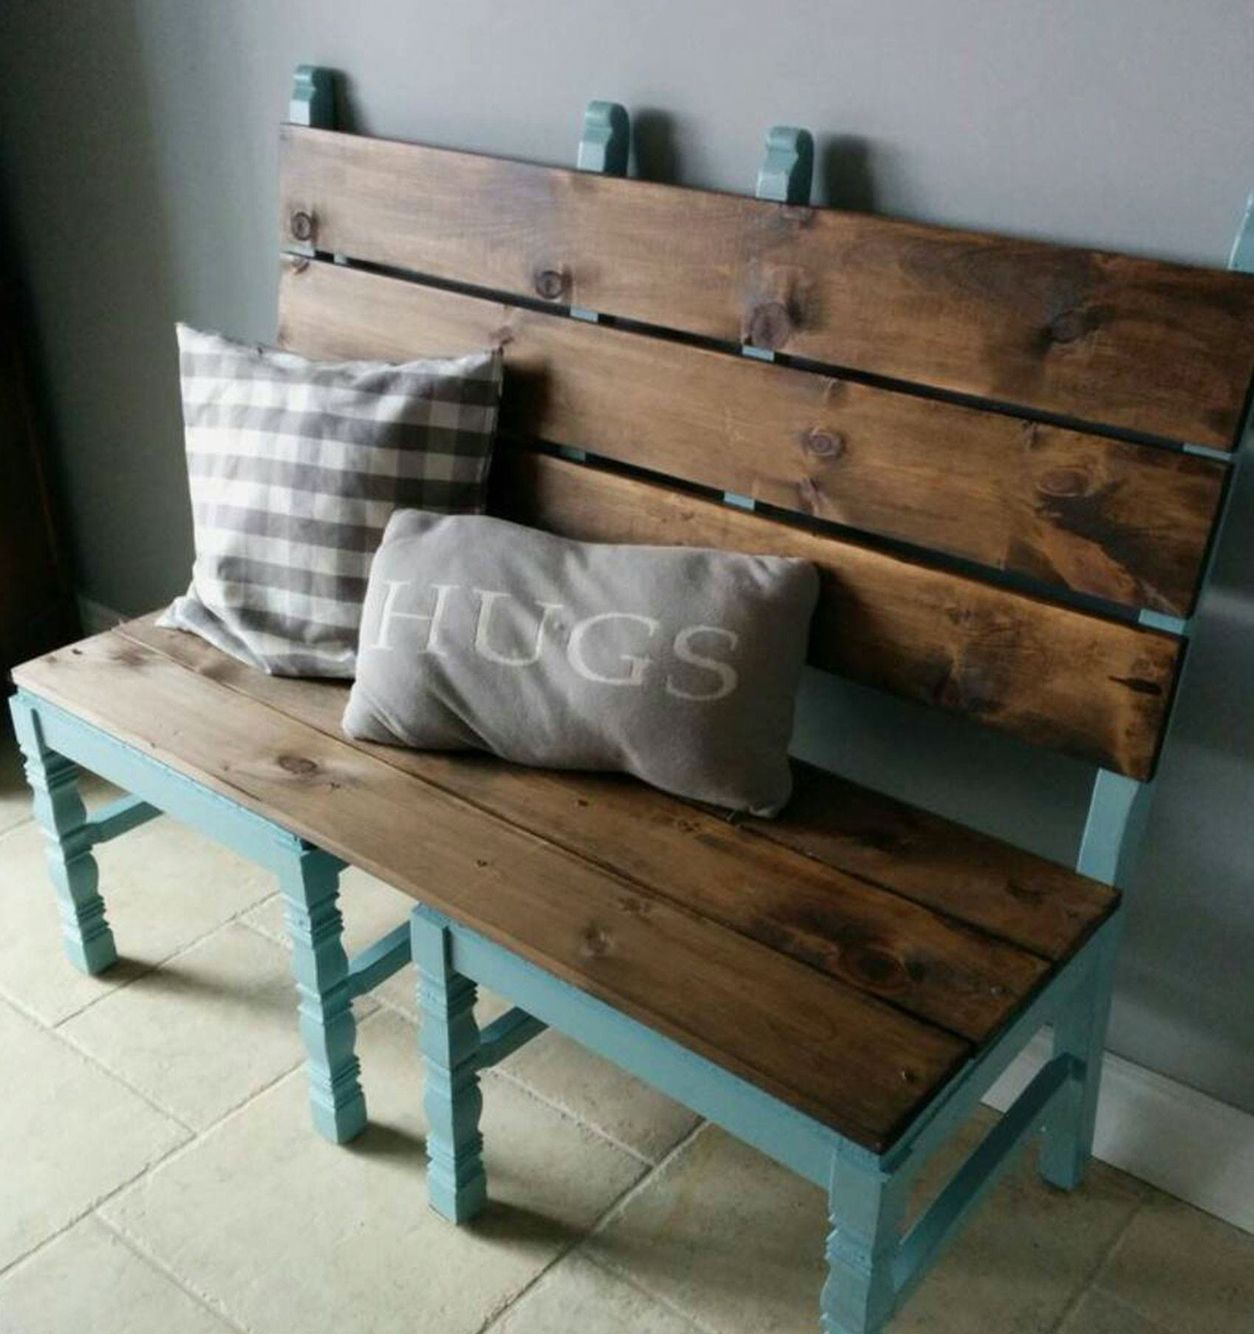 Old Chairs Made Into A Bench  Old Things Made New  Pinterest Interesting Build Dining Room Chairs Design Decoration